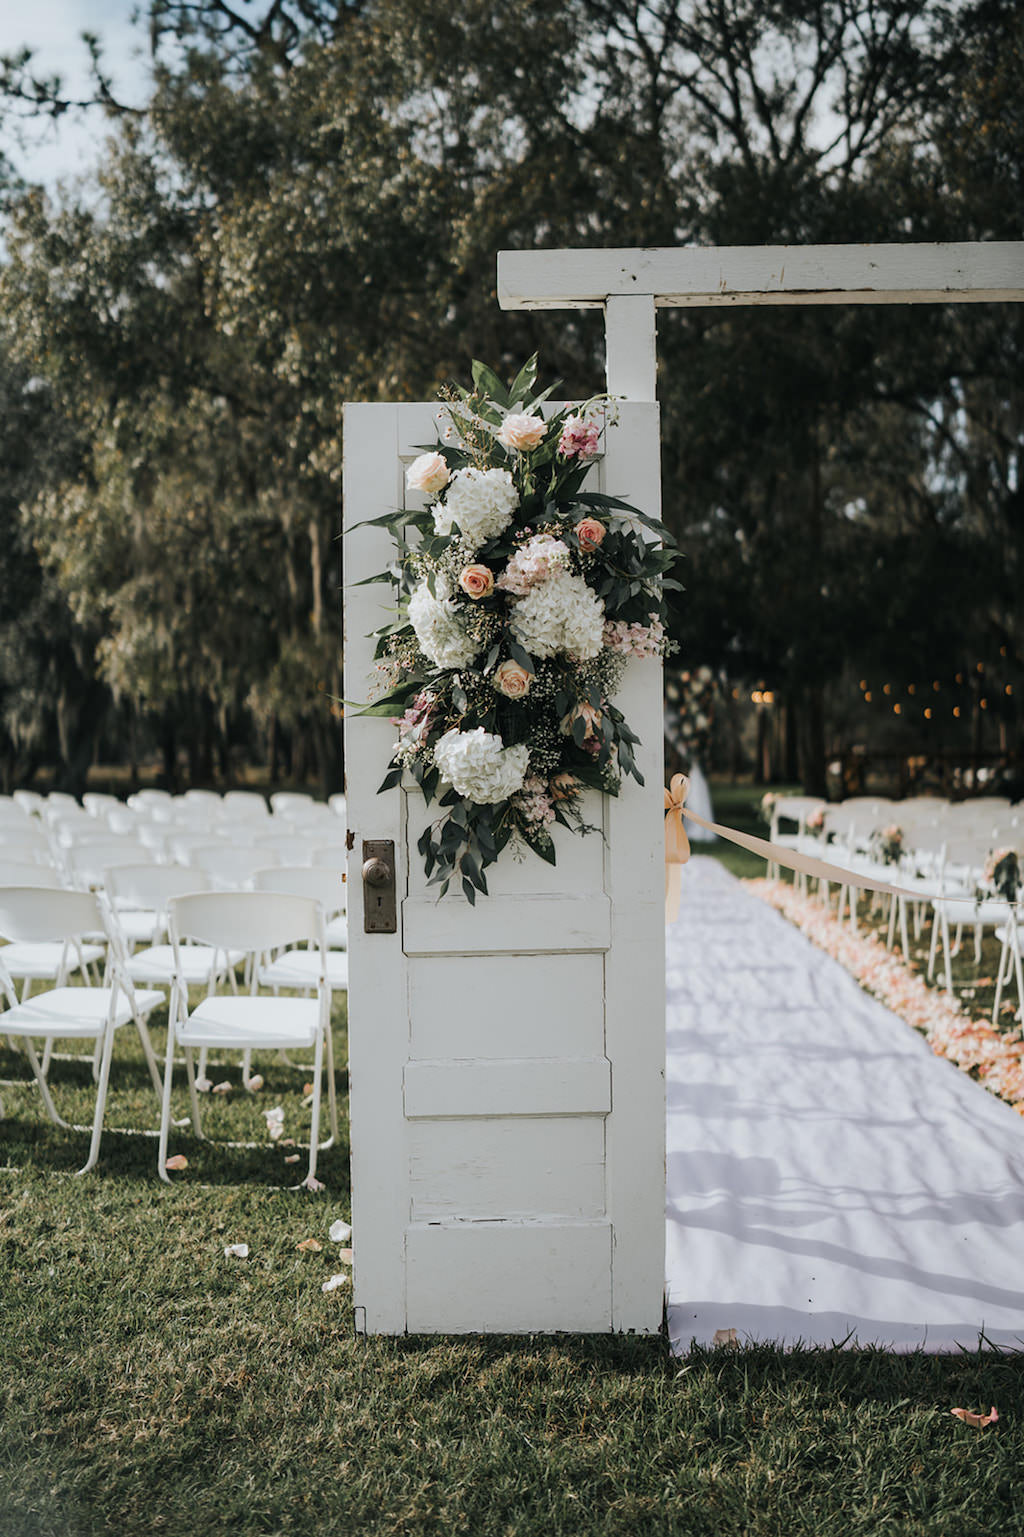 Rustic Chic Outdoor Wedding Ceremony Decor, Wooden Door Entry with White Hydrangeas, Blush Pink Roses and Greenery Floral Arrangement   Tampa Wedding Venue Rafter J Ranch   Wedding Planner Kelly Kennedy Weddings and Events